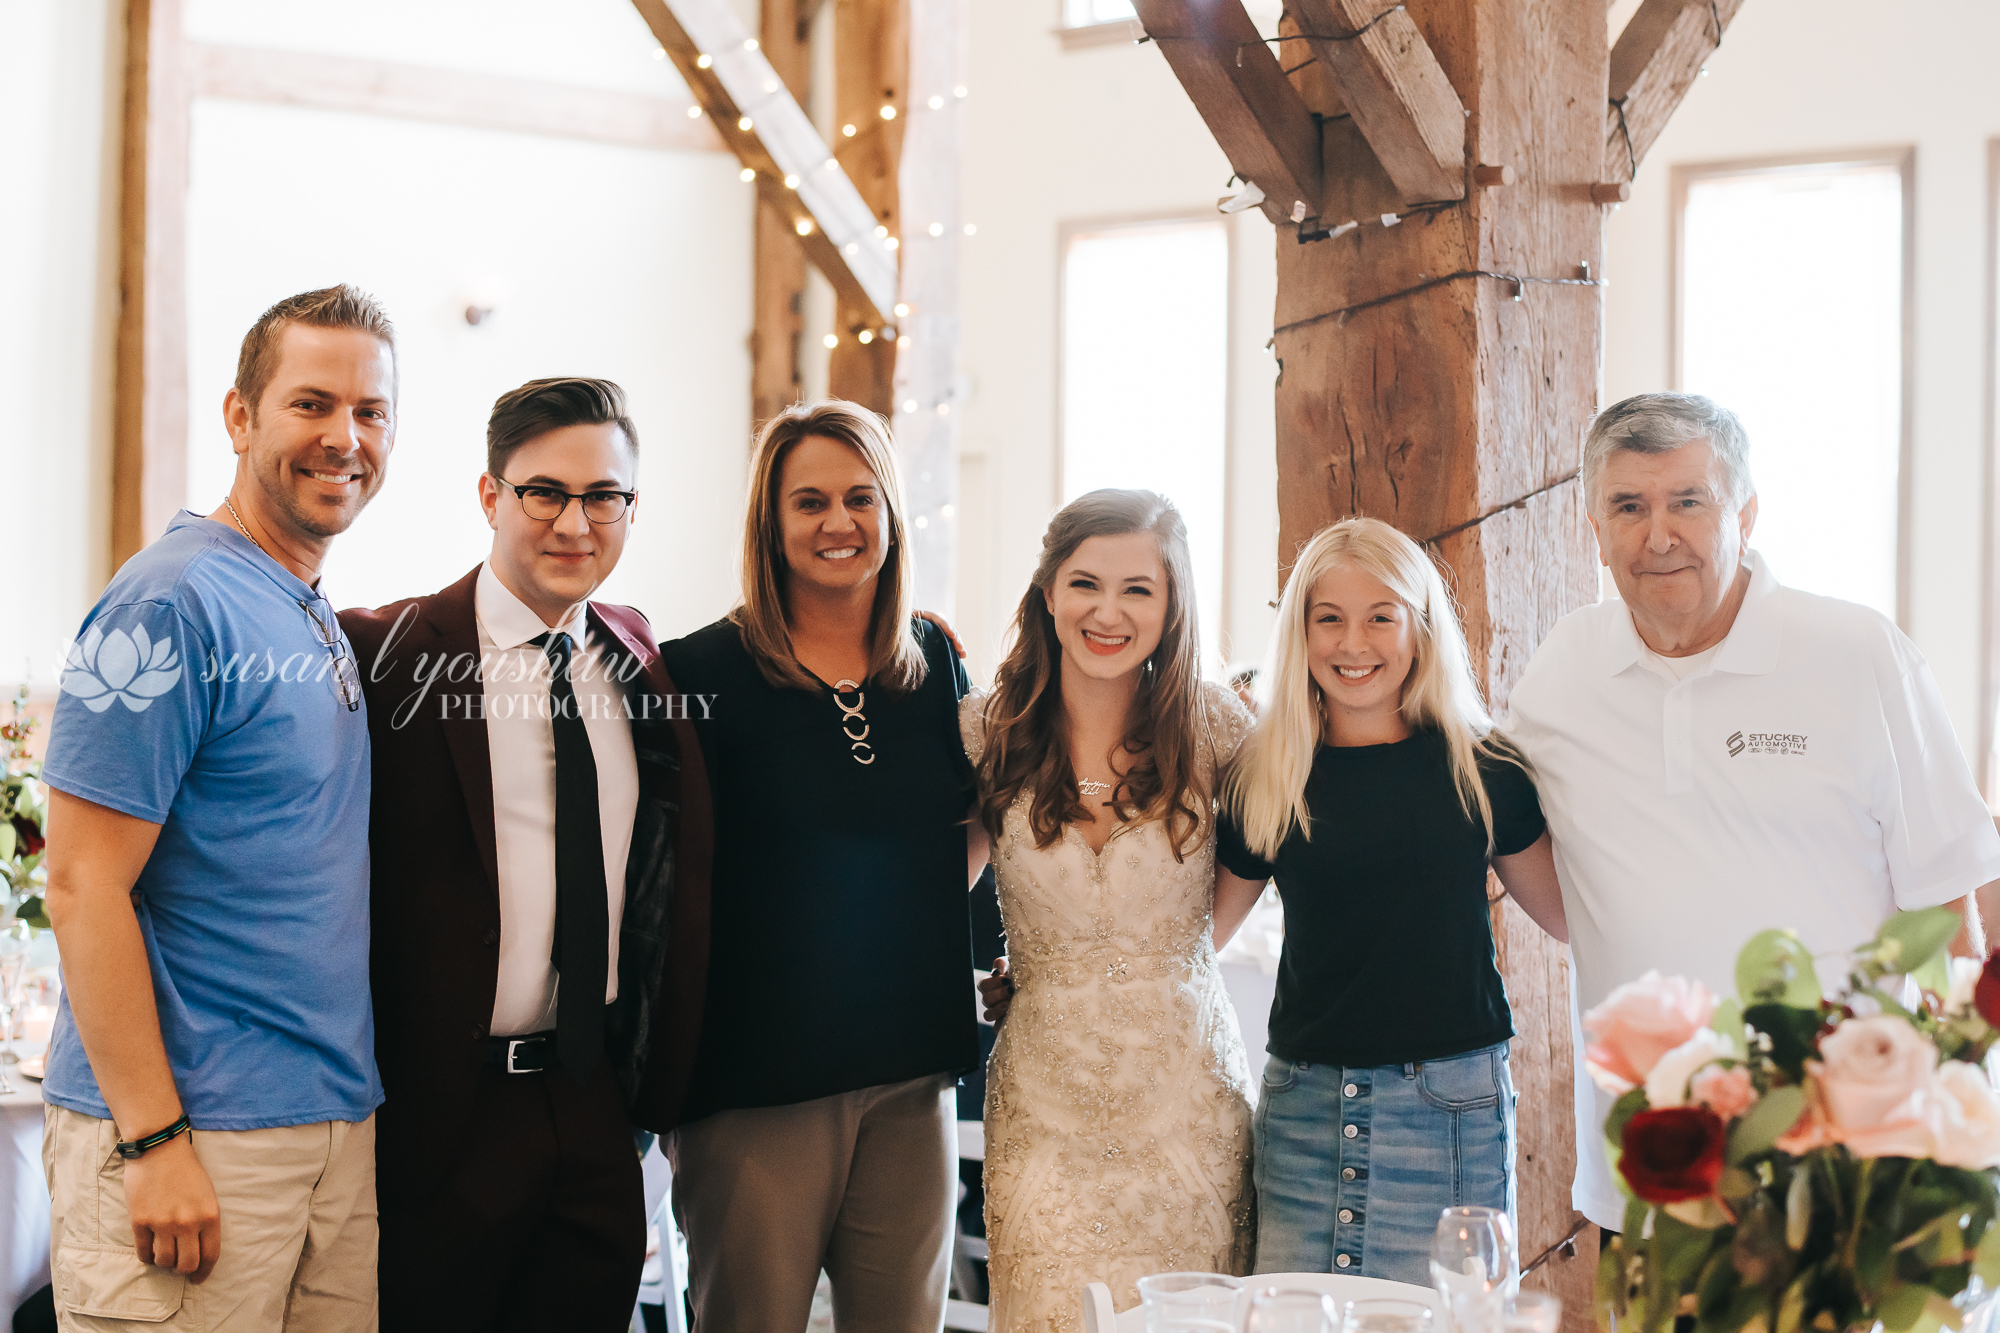 Chynna and John Wedding 05-18-2019 SLY Photography-117.jpg